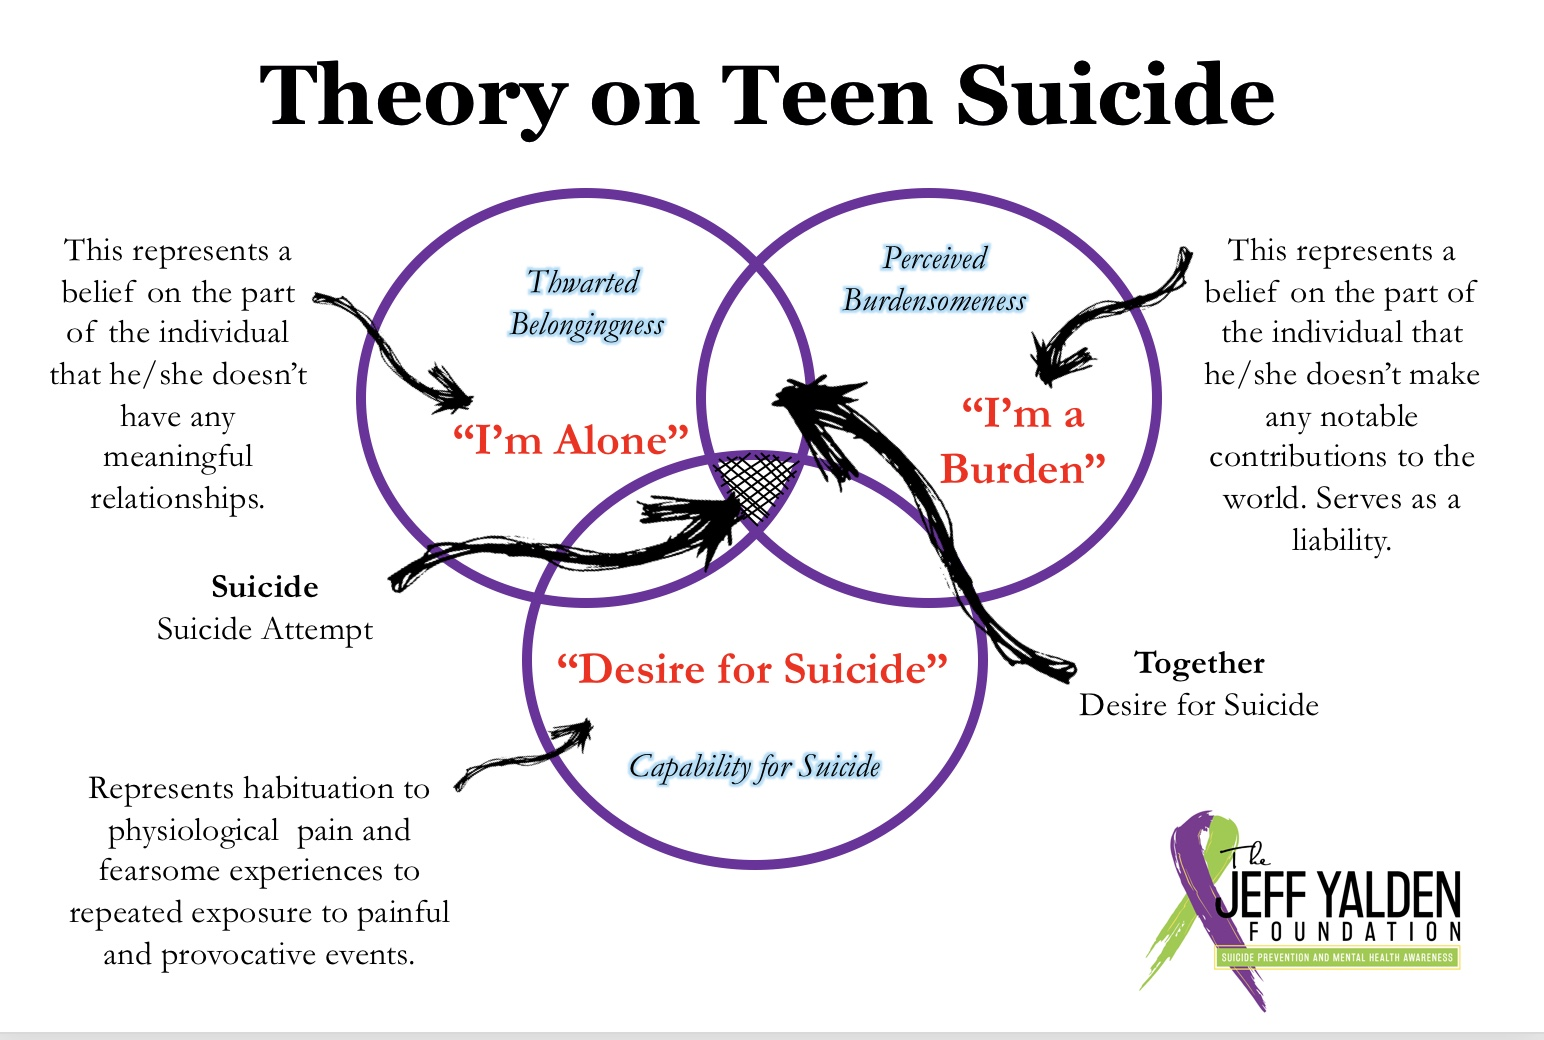 Jeff's Theory on Teen Suicide and Suicide Prevention